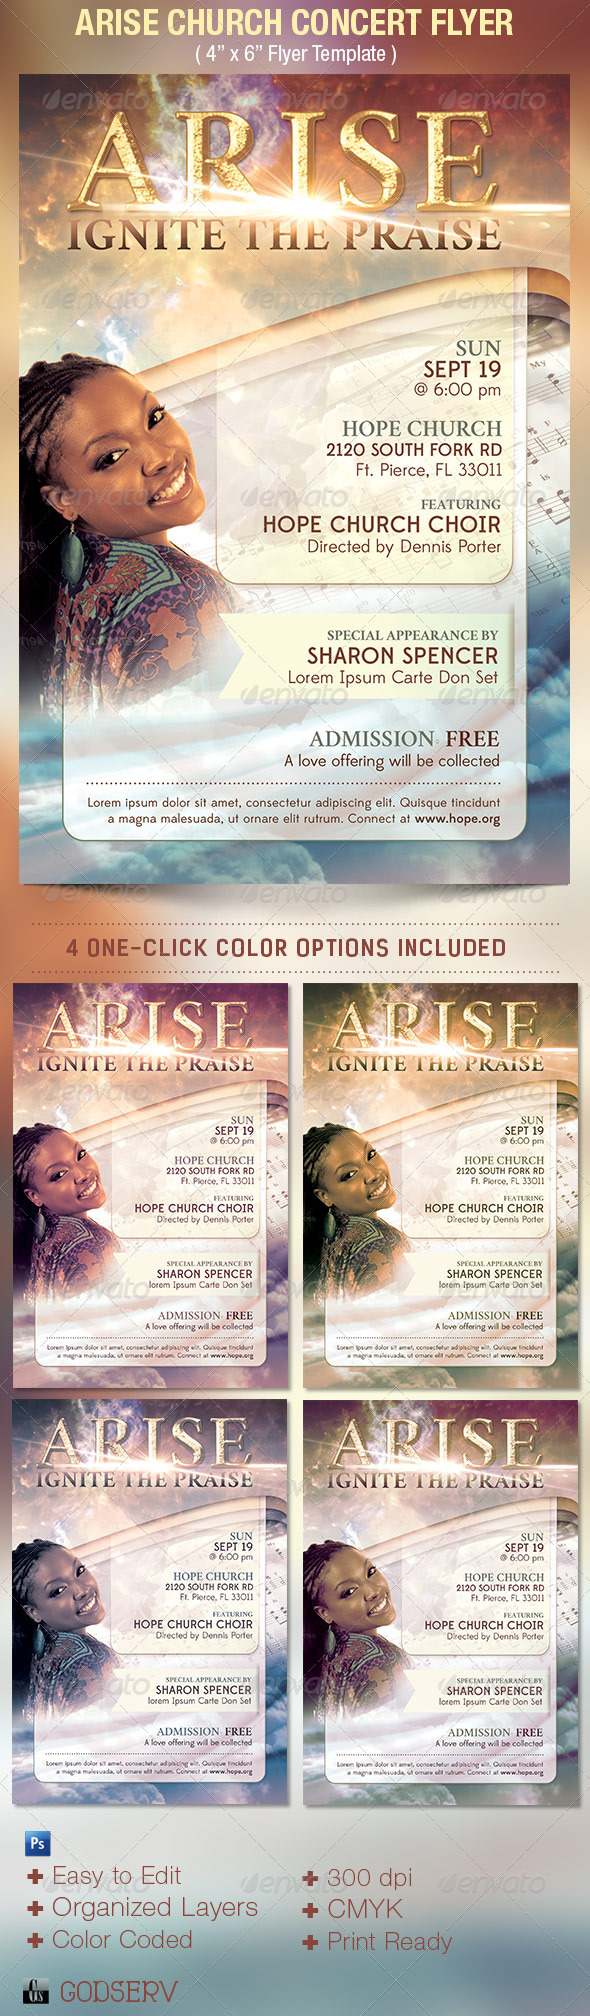 Arise Church Concert Flyer Template - Church Flyers